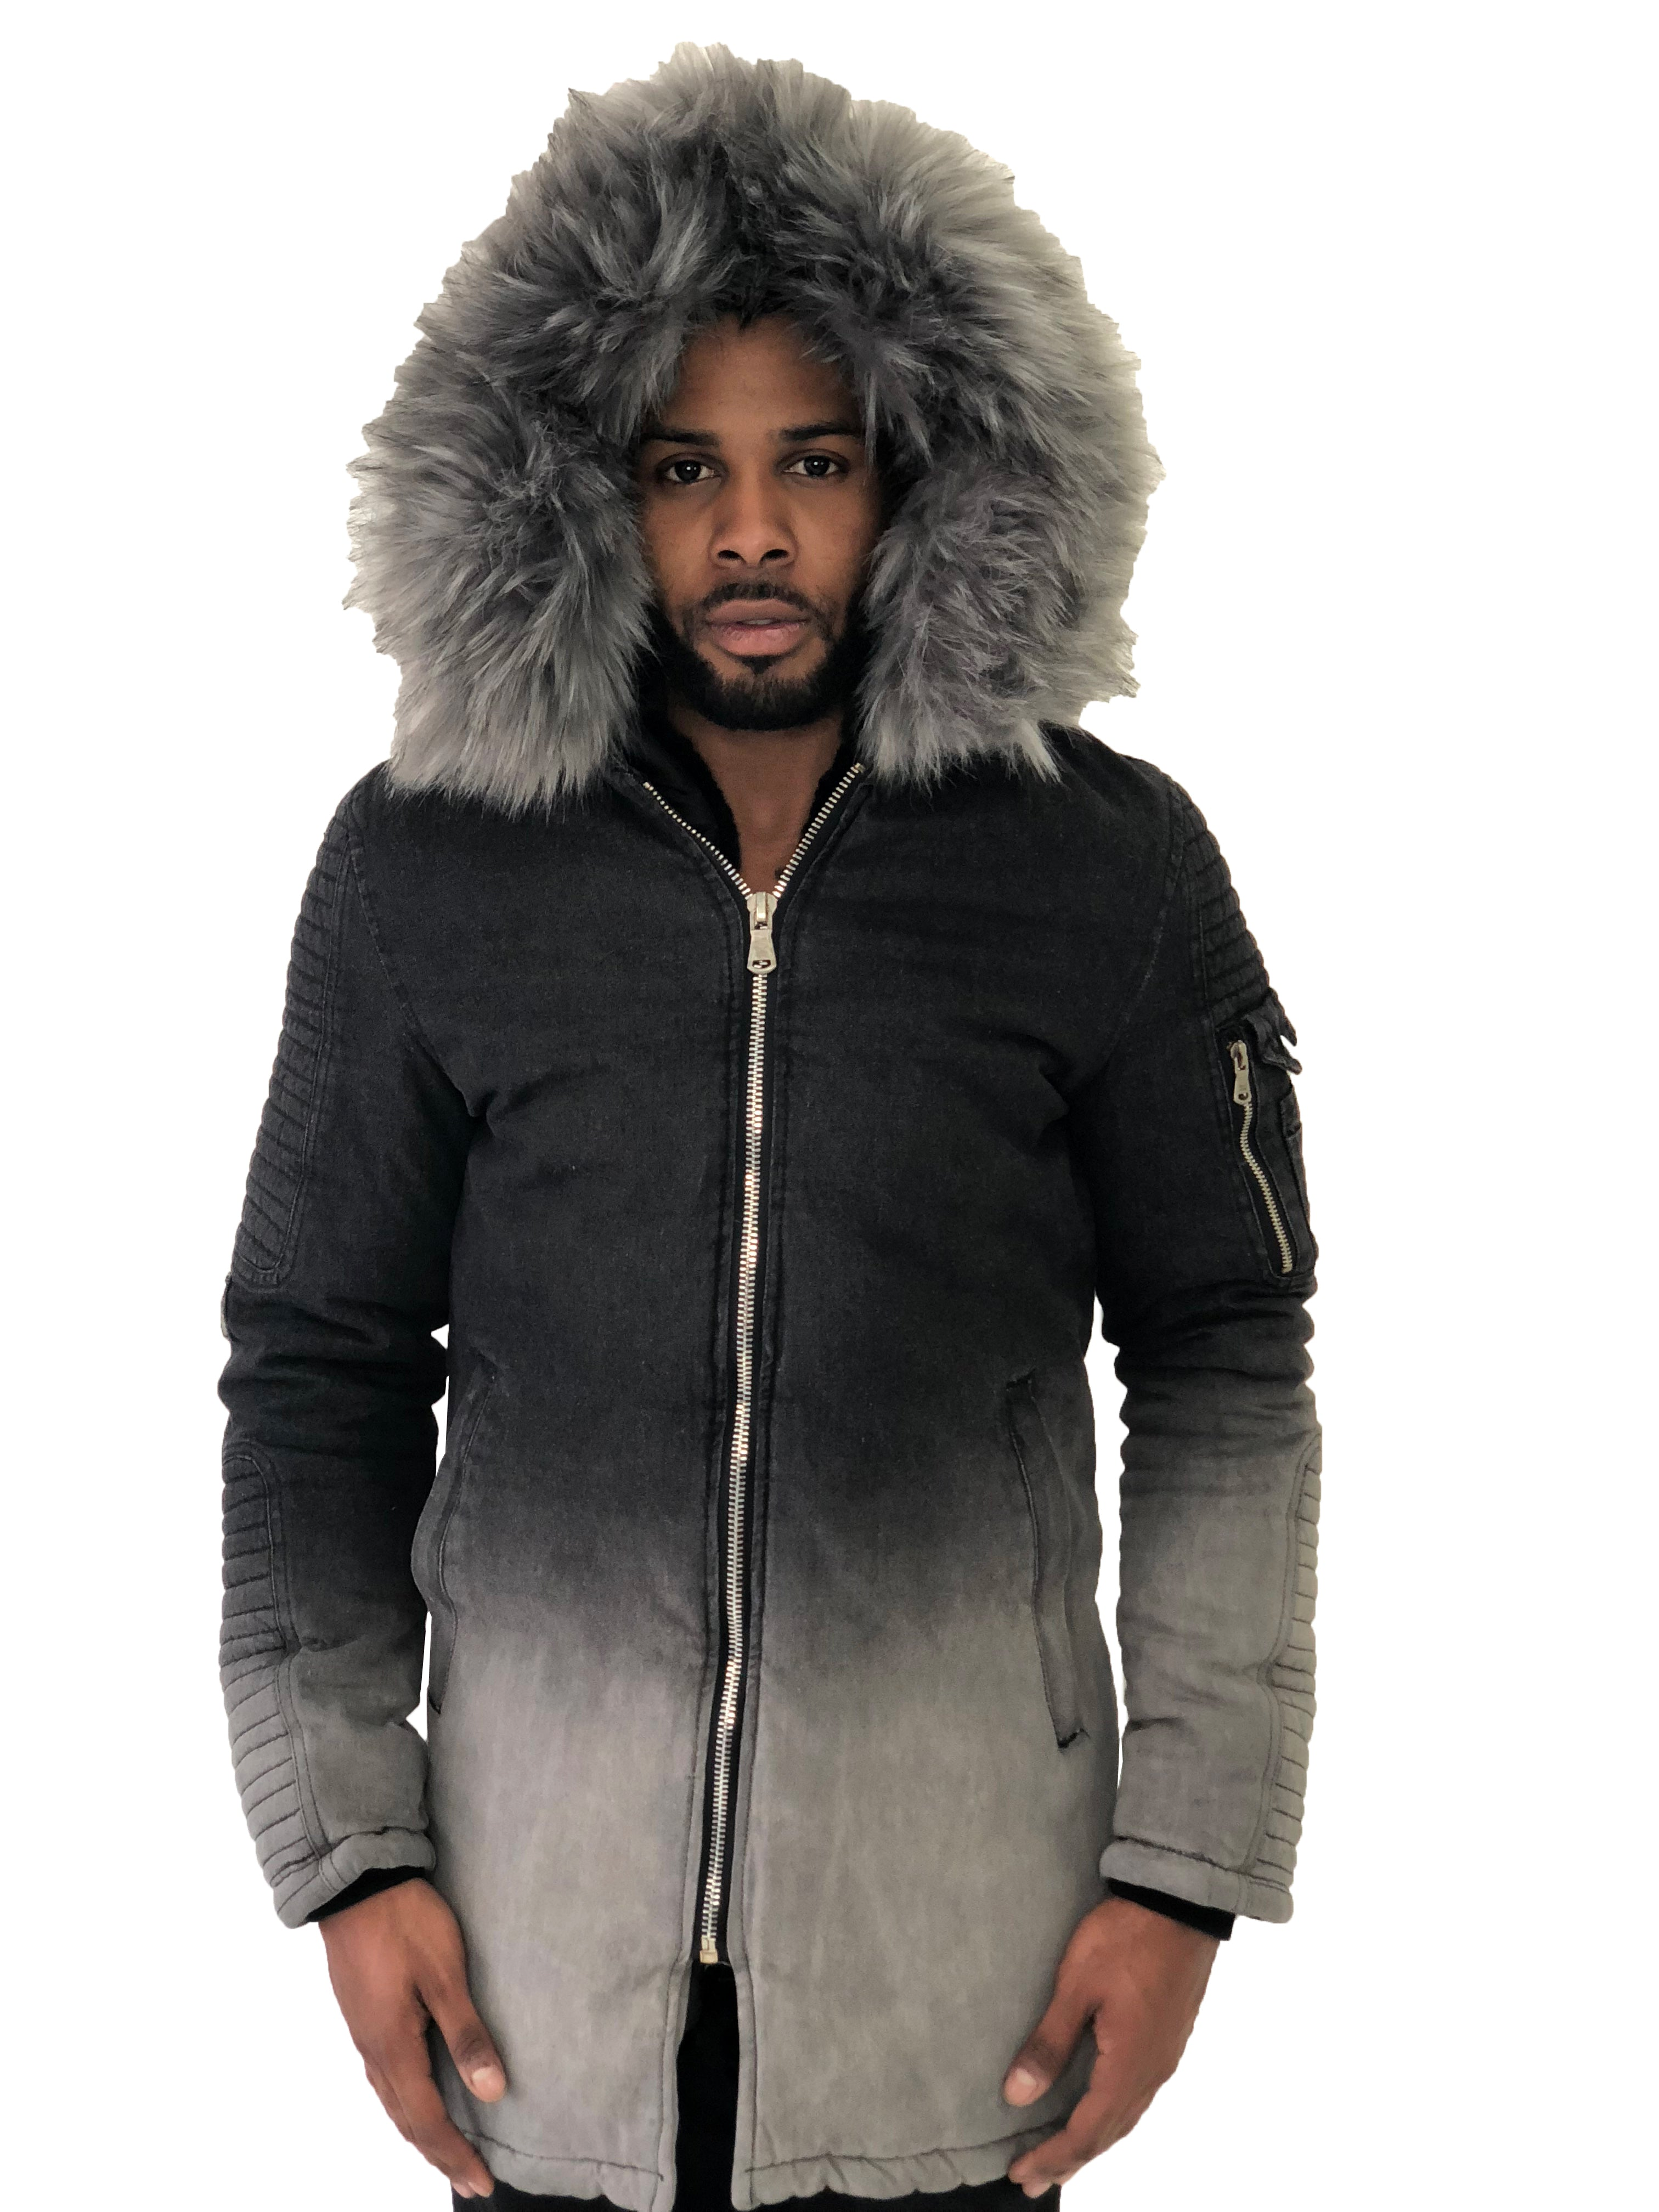 Men Coat Two Toned Gray Fur Collar Gray by Project X Paris - Brit Boss